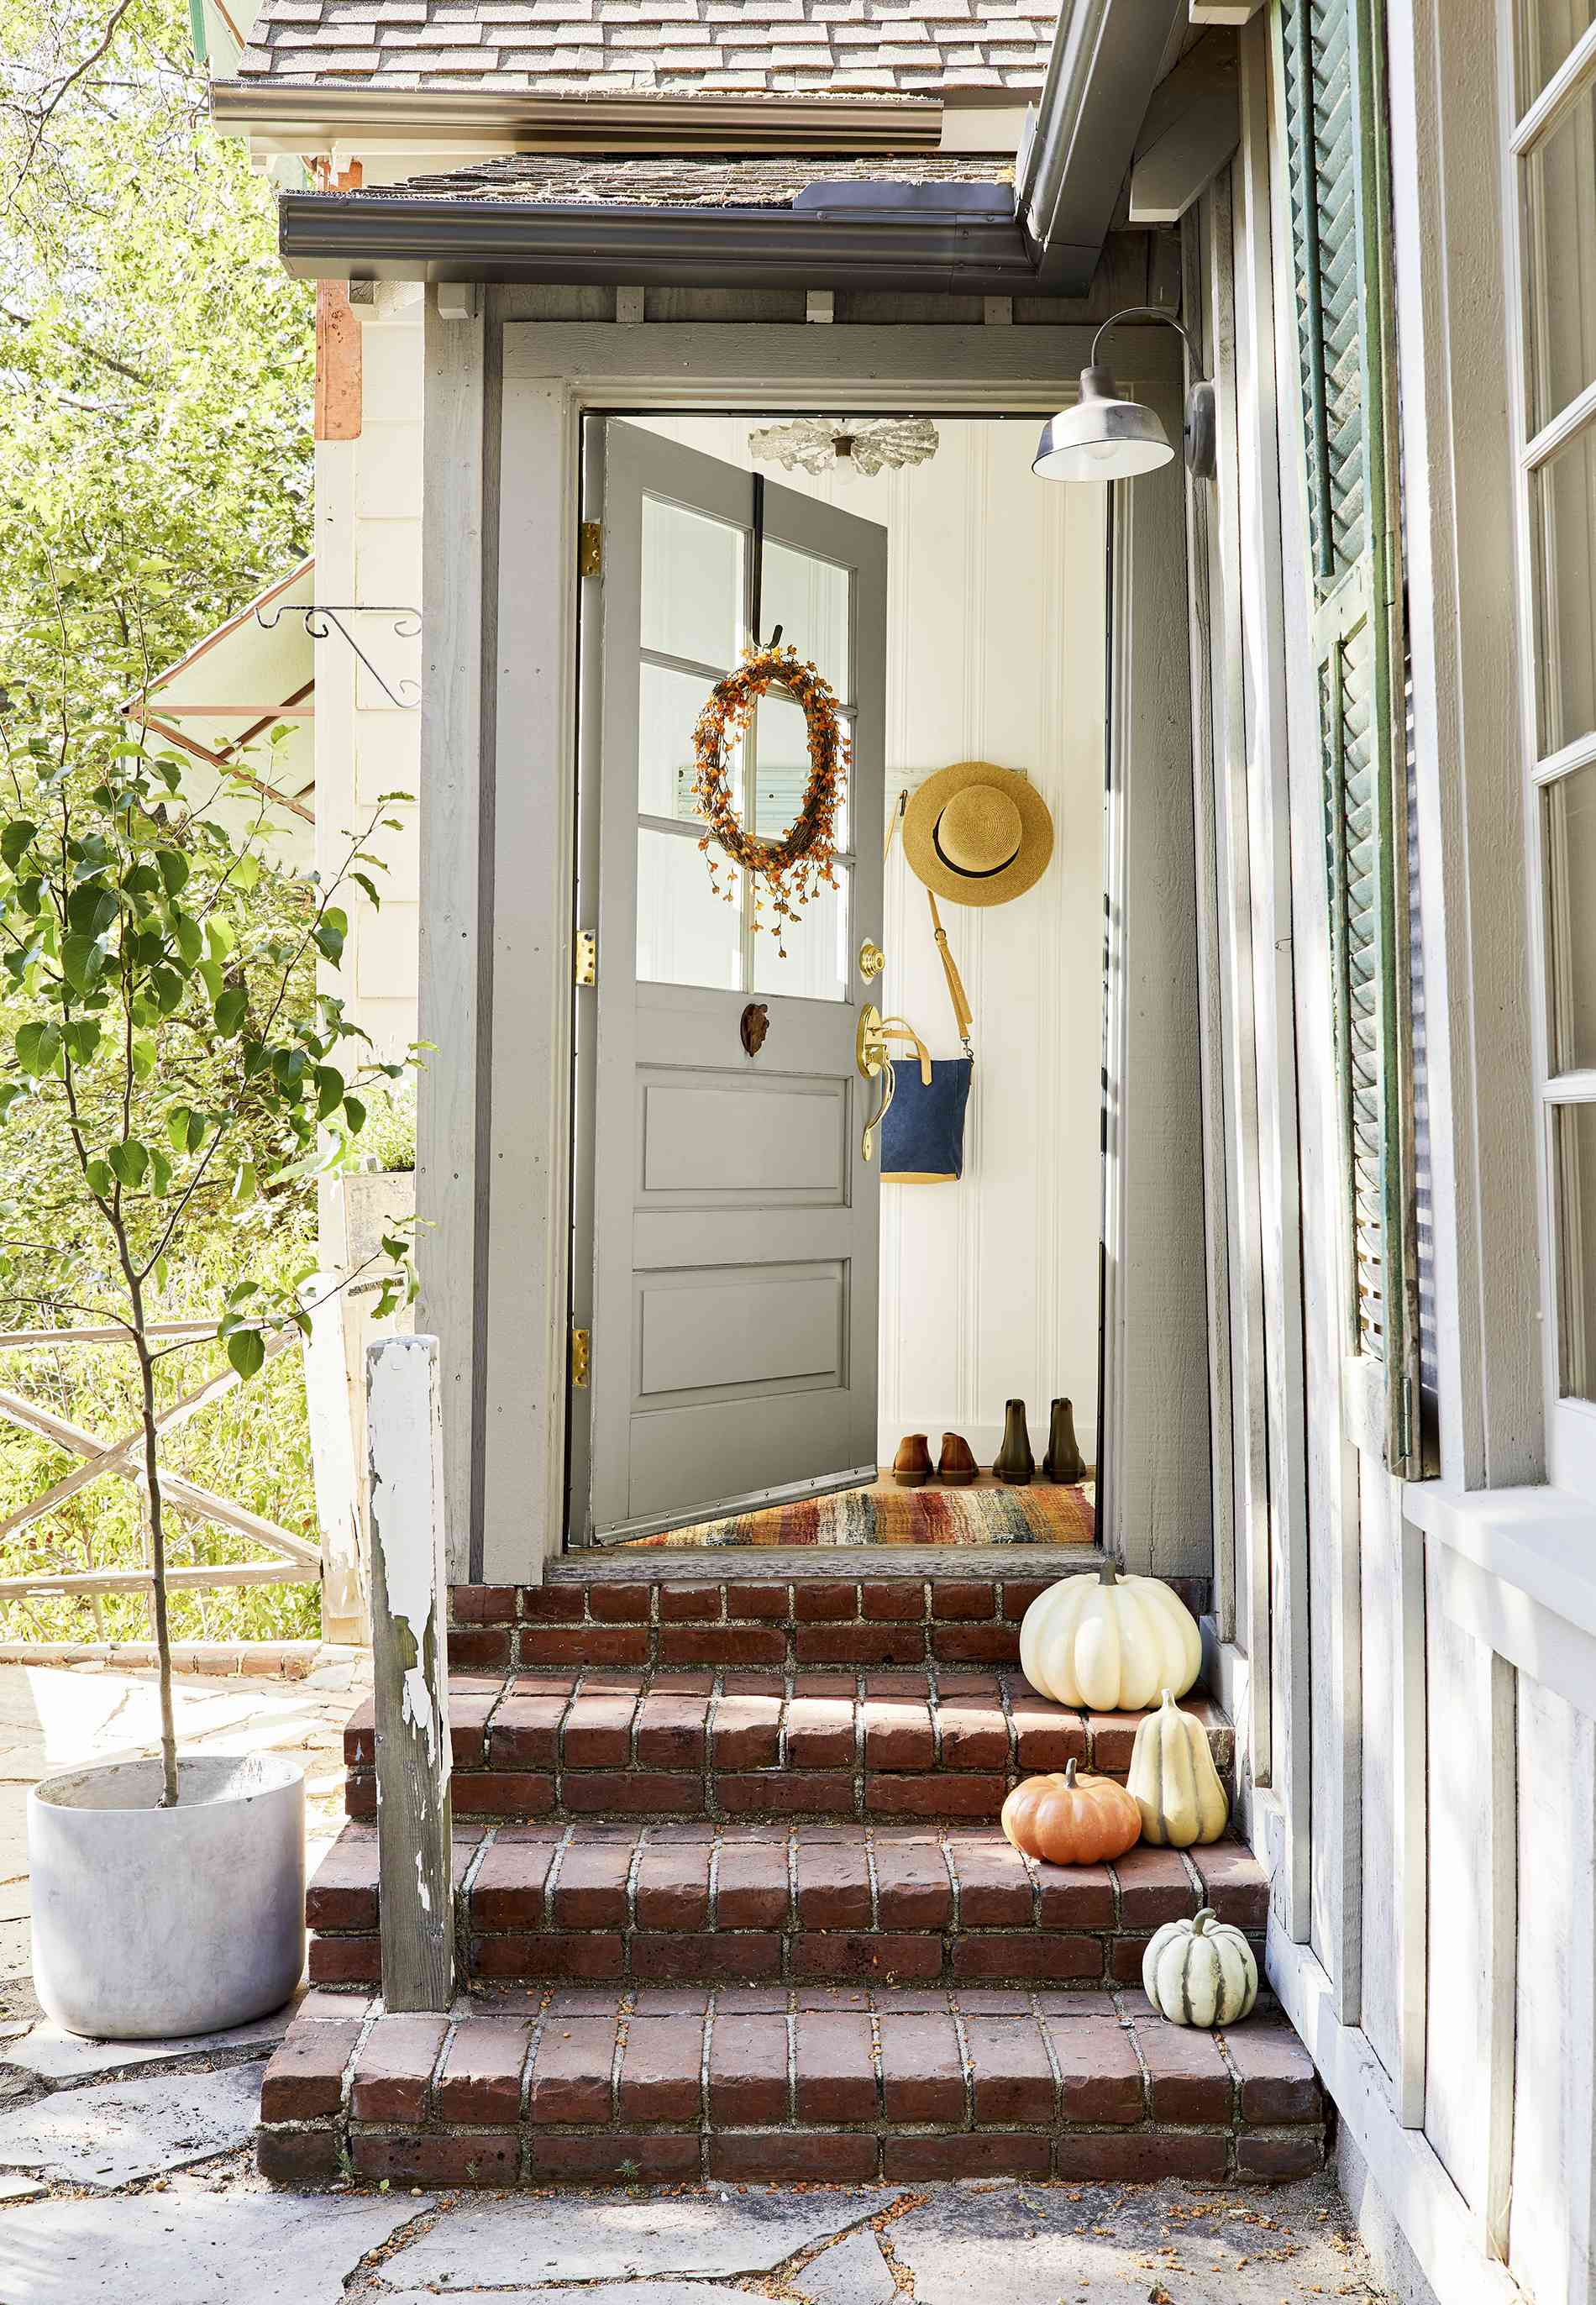 11 of the Prettiest Fall-Inspired Front Doors We Spotted on Instagram